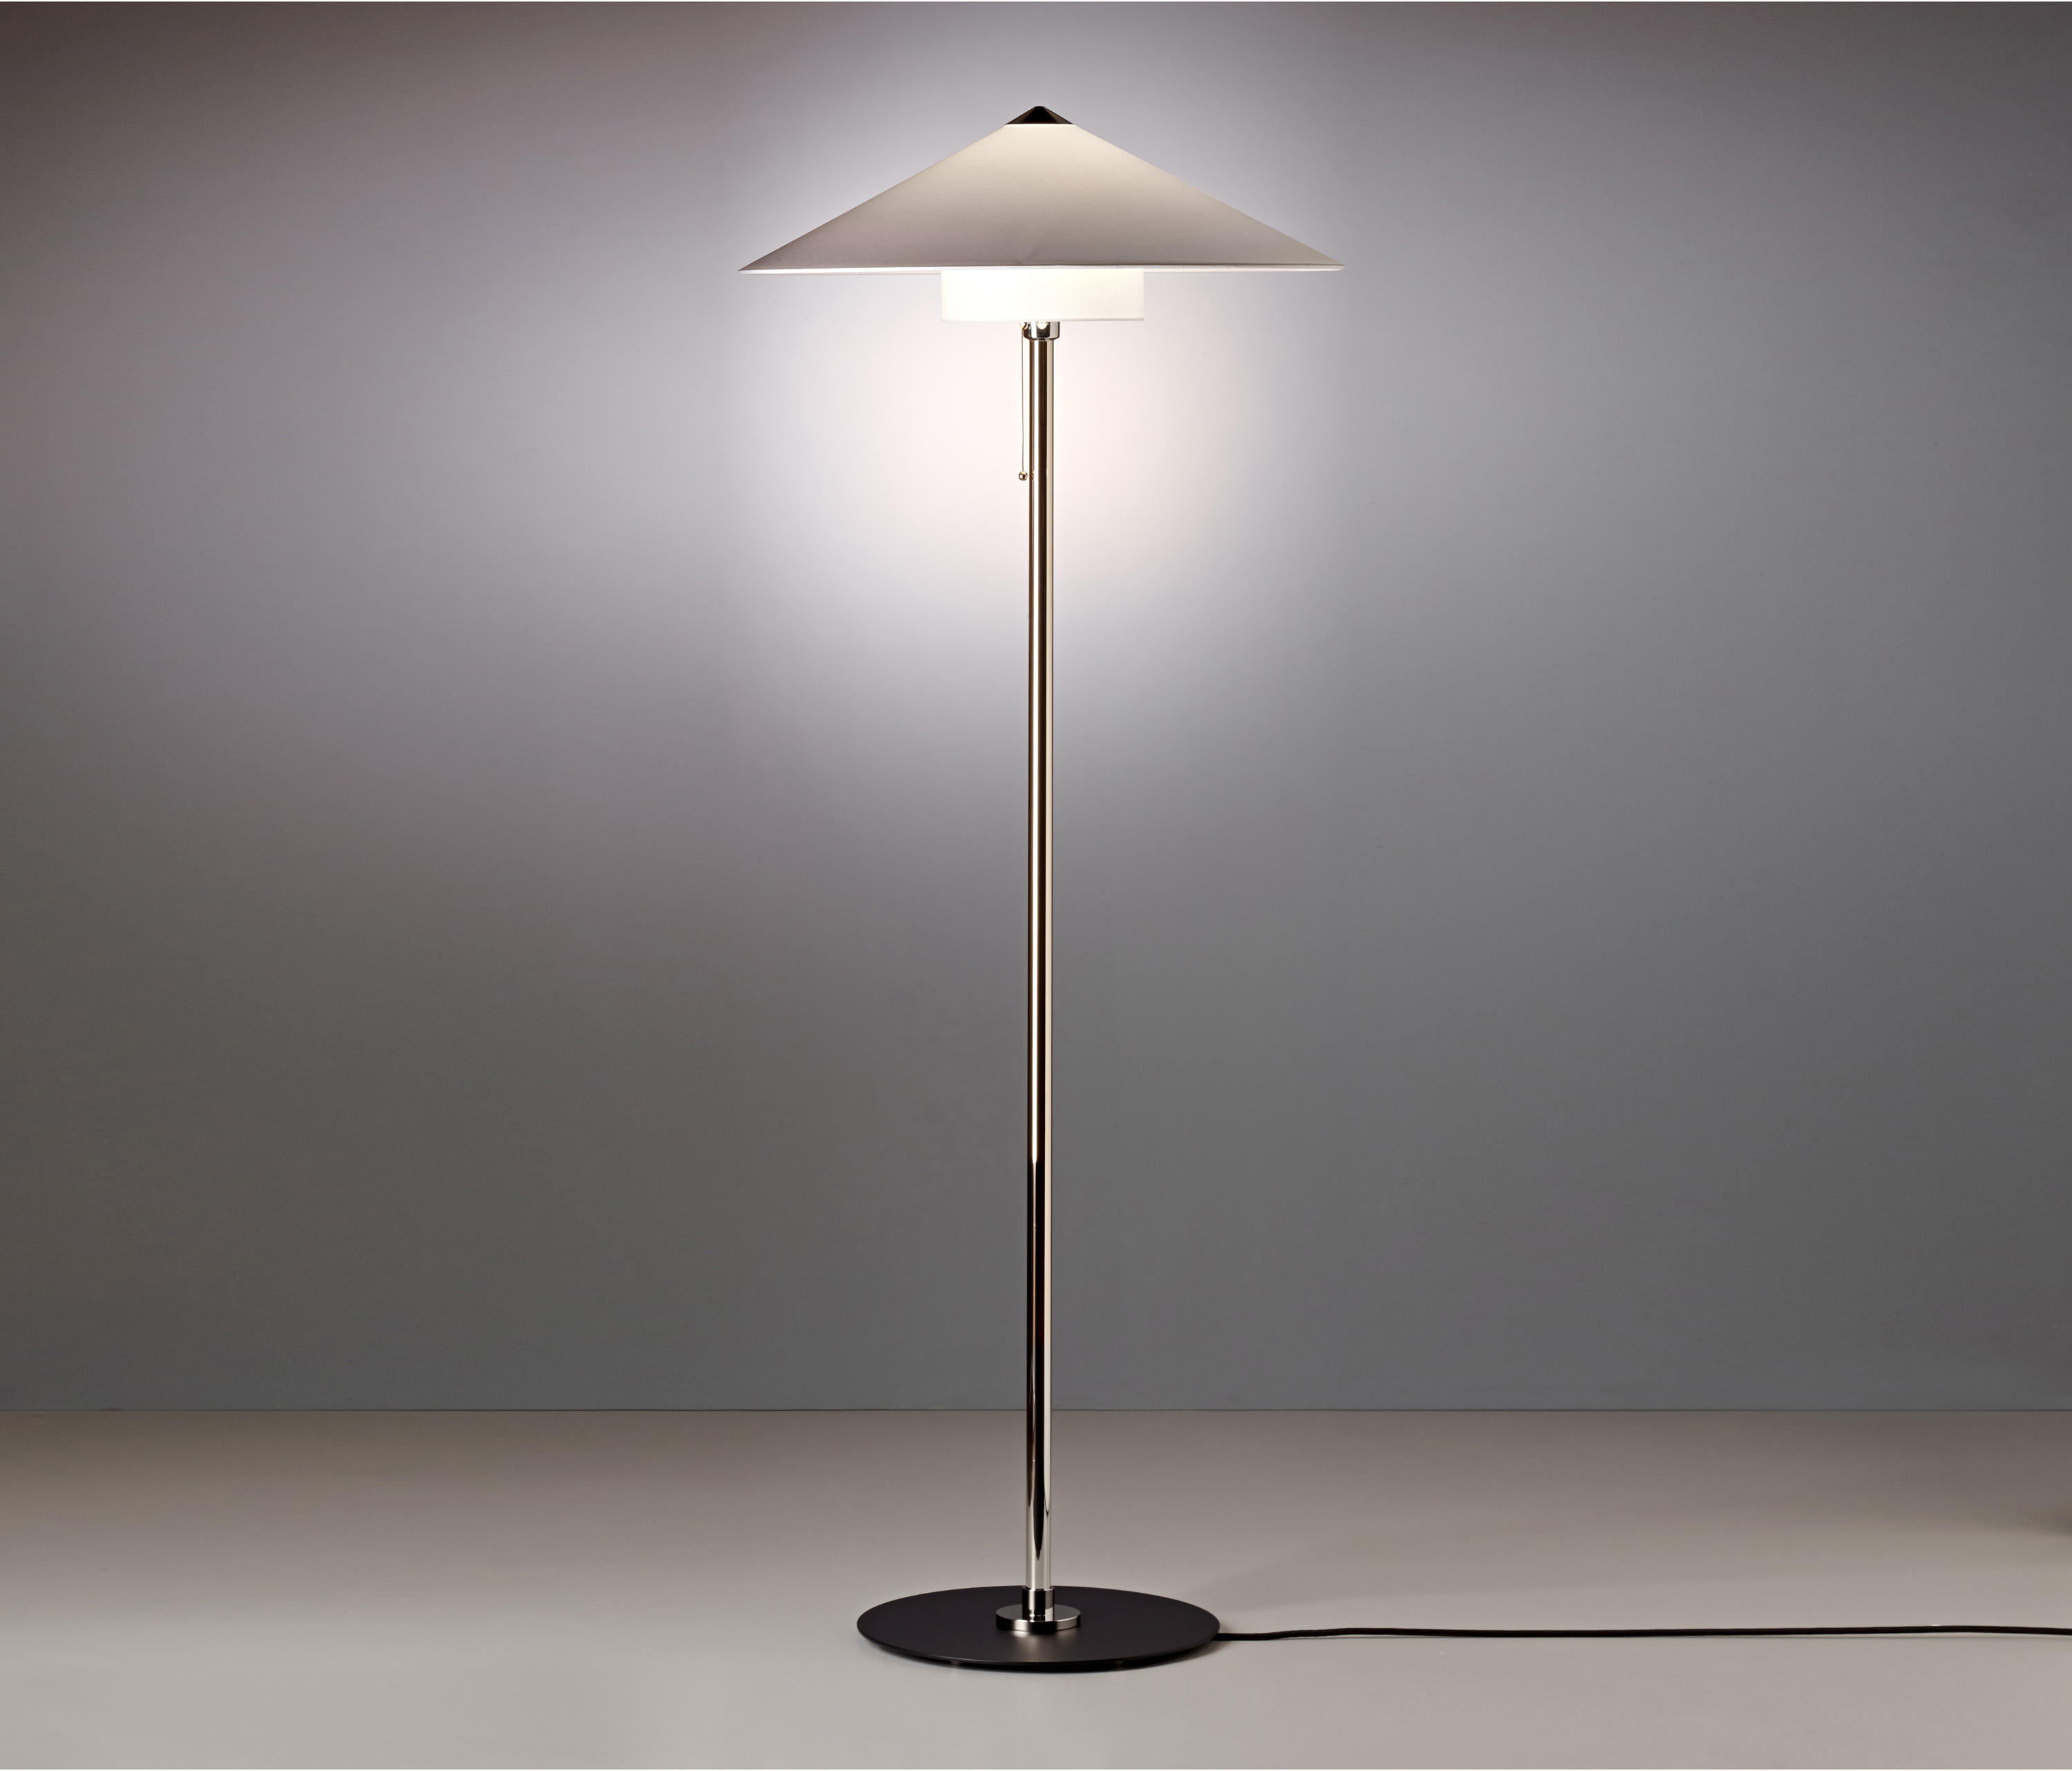 Wstl30 floor lamp free standing lights from tecnolumen architonic wstl30 floor lamp by tecnolumen free standing lights aloadofball Image collections